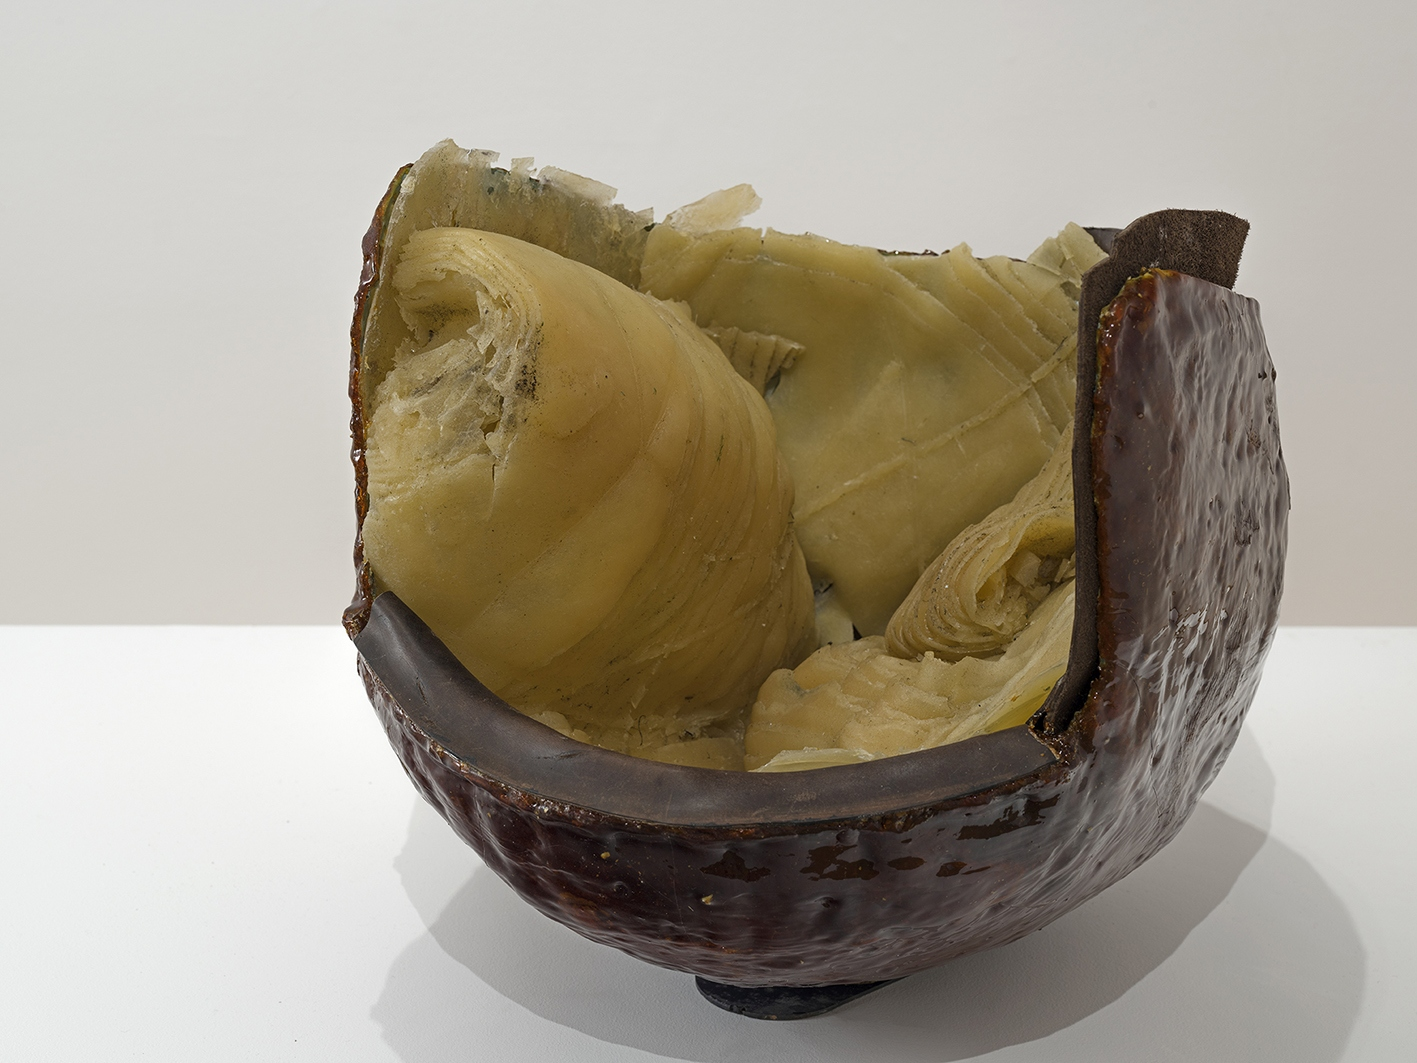 Honey pot, 2016, Resin, pine resin, leather, 41 x 37 x 45 cm